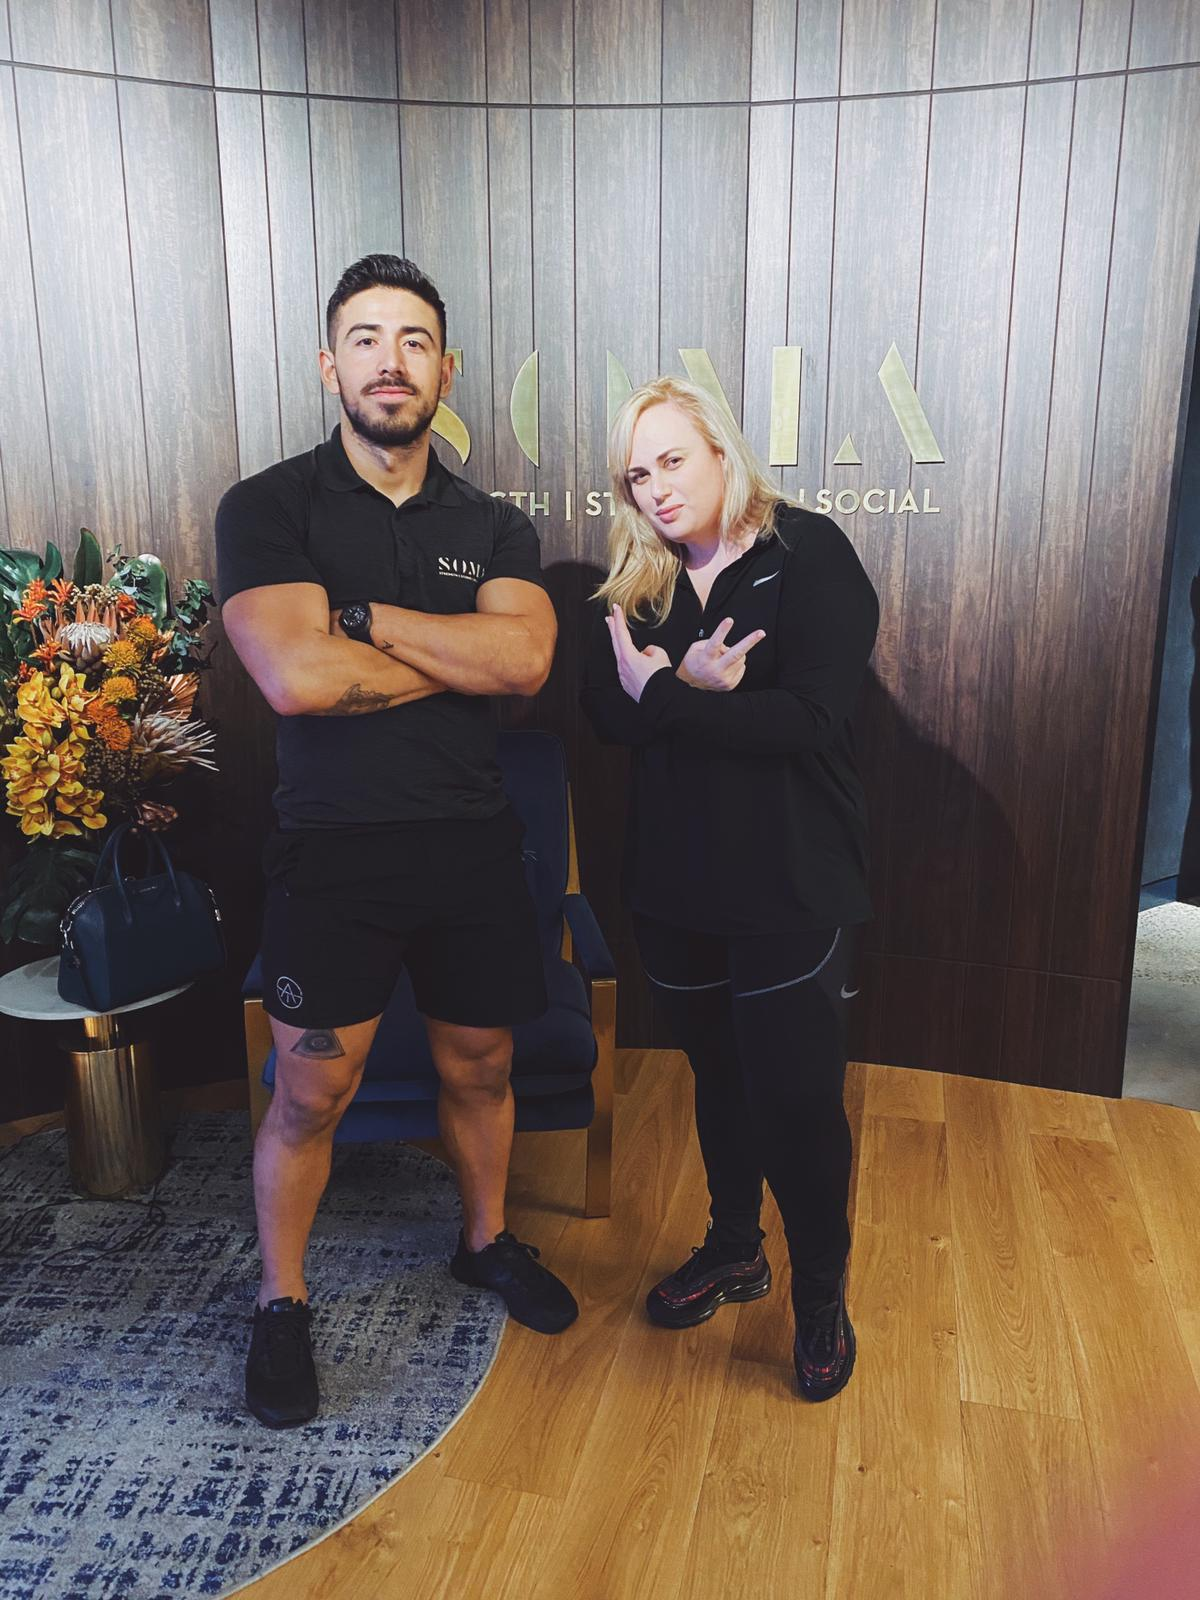 Rebel Wilson Puts in Work at the Gym With Help From Her Personal Trainer Jono Castano Acero